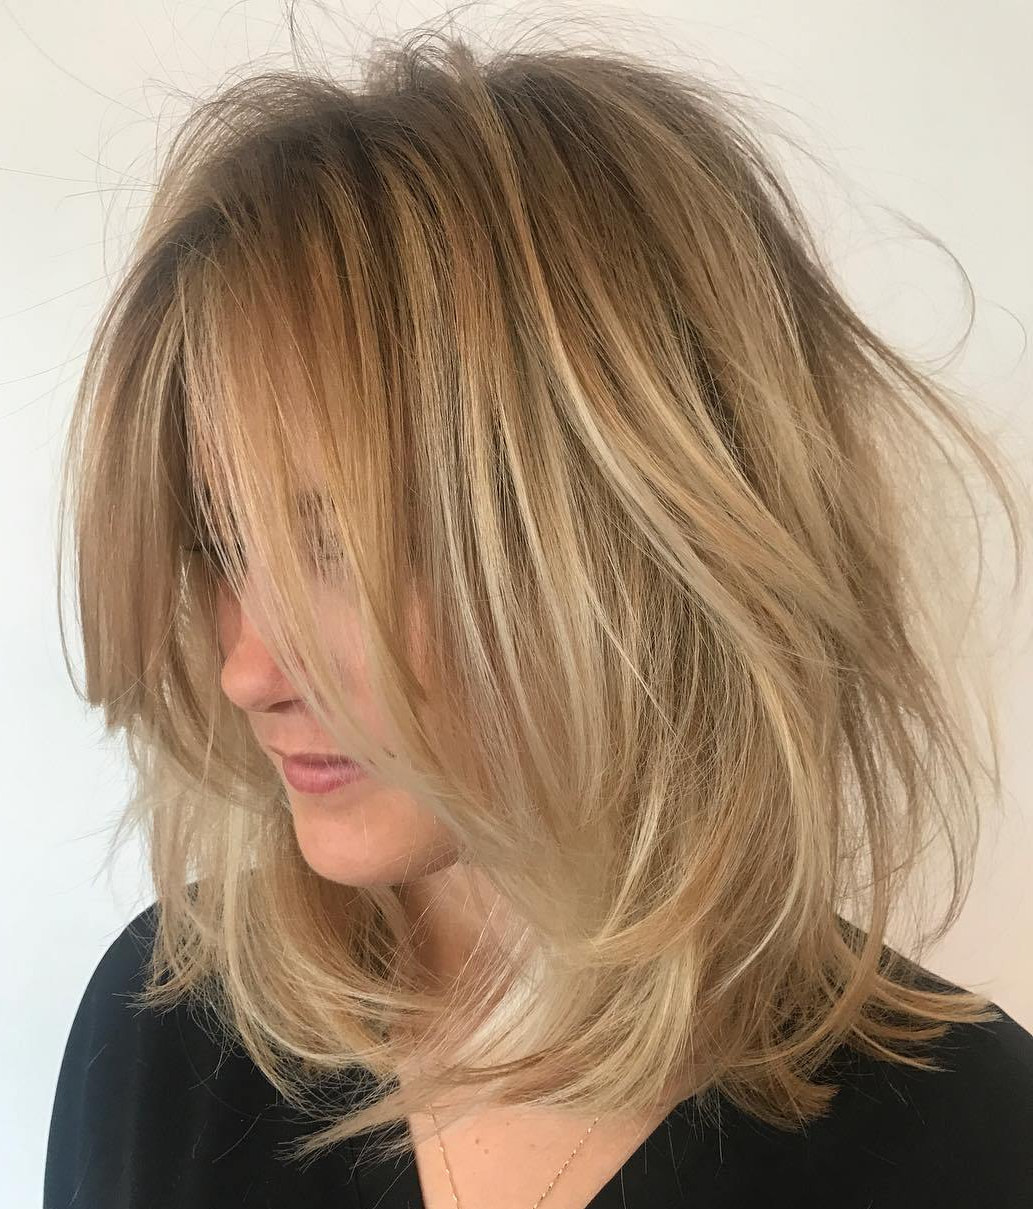 70 Devastatingly Cool Haircuts For Thin Hair Throughout Layered Bob Haircuts For Fine Hair (Gallery 11 of 20)